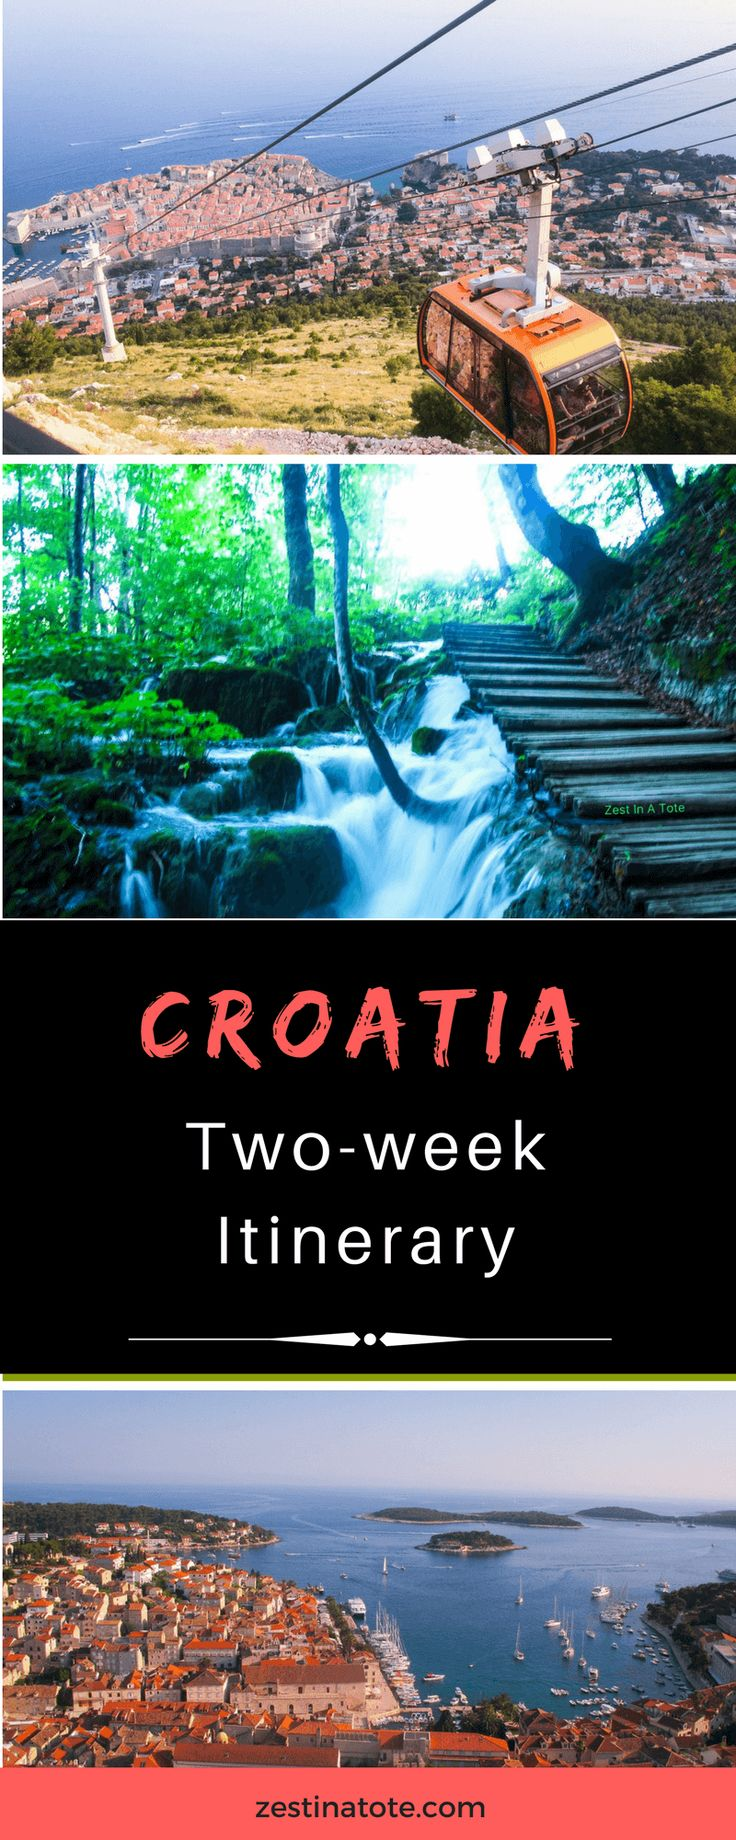 The Croatia itinerary we followed, gave us an opportunity to visit UNESCO Heritage sites like Plitvice national park and Ston walls, relax in beautiful islands of Hvar and Vis, explore medieval cities of Split and Dubrovnik. This itinerary is suitable for family travel. #croatia #croatiaitinerary #visitcroatia #dubrovnik #plitvicelakes #split #zagreb #ston #hvar #croatiawithkids #croatiafamilytravel #familytravel